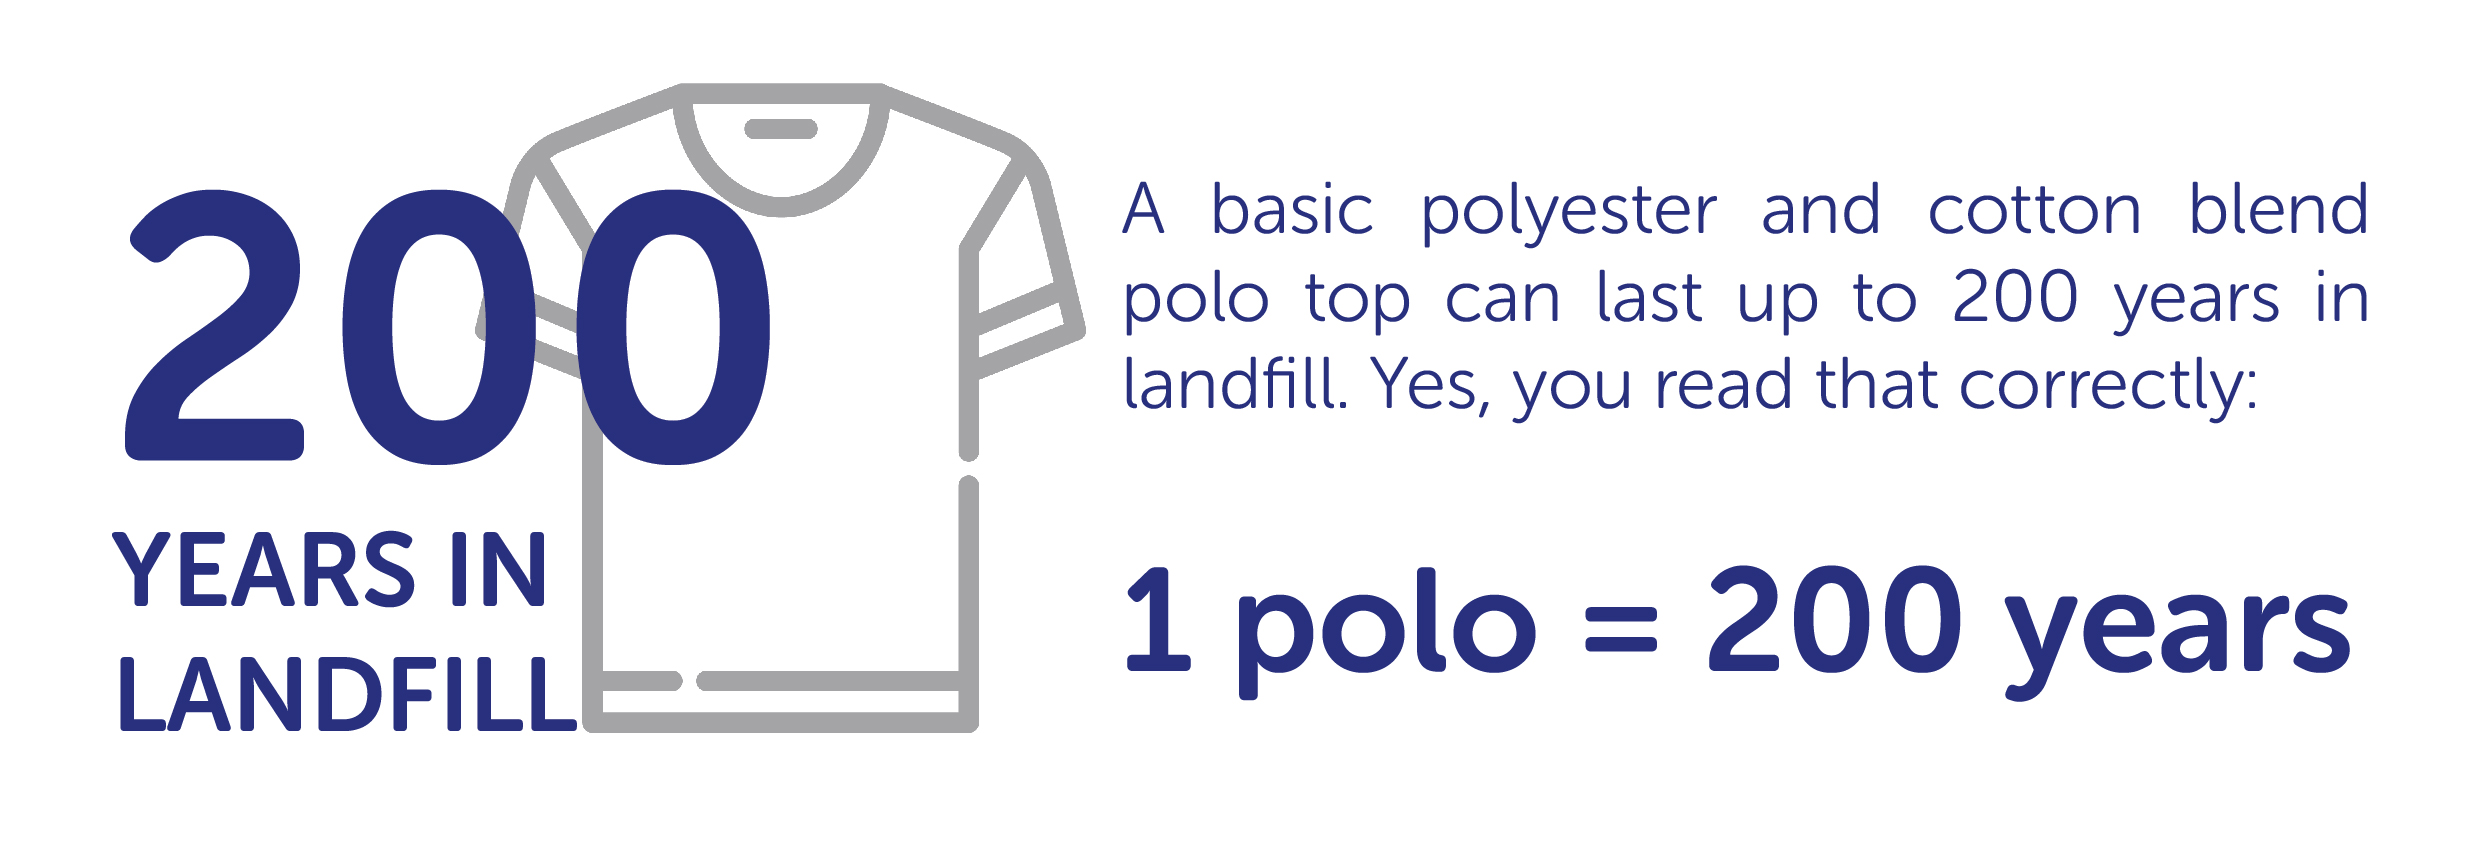 A basic polyester and cotton blend polo top can last up to 200 years in landfill.